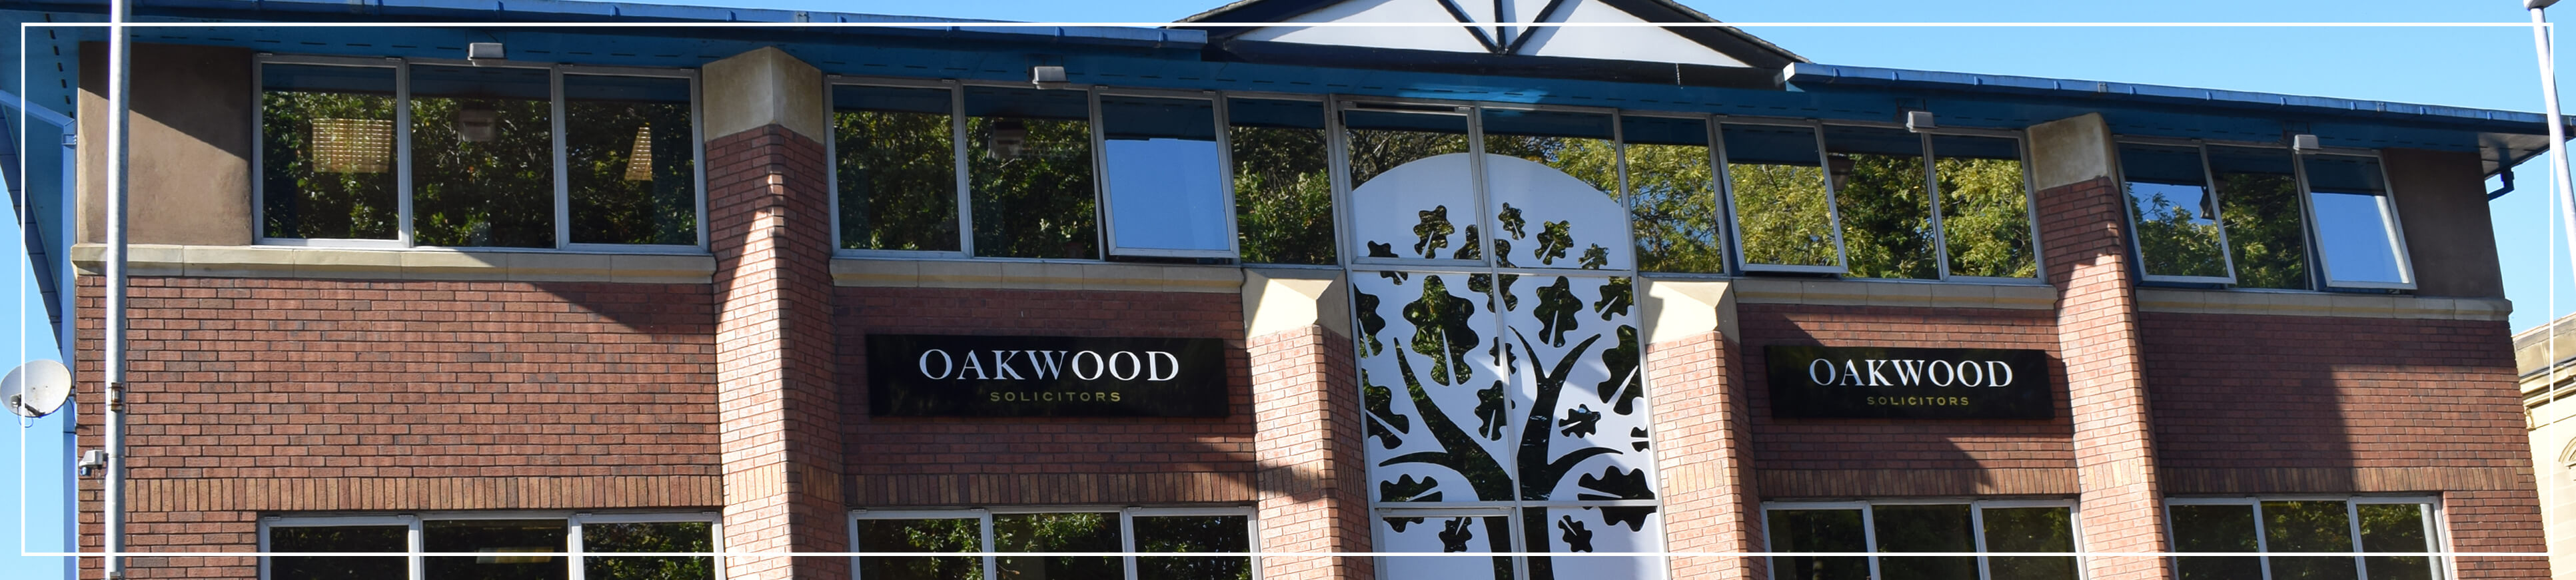 Oakwood Solicitors Ltd